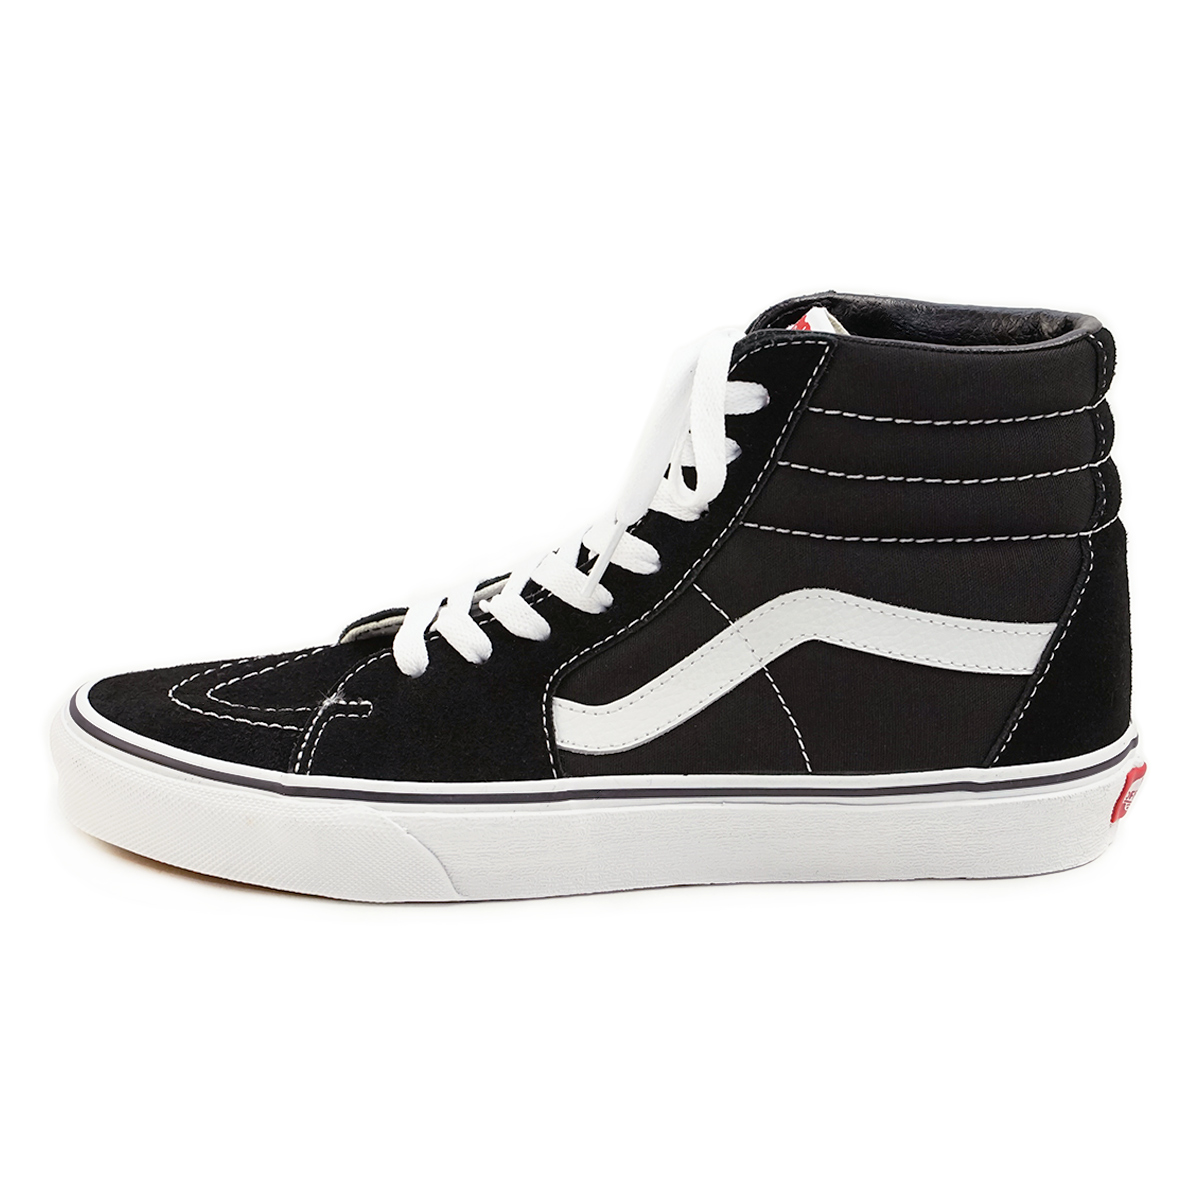 Jalana  Vans VANS United States standard SK8-HI skating high black   white ( SK8-HI SKOOL Black Hi-Top Skate casual )  b9c2e3b71